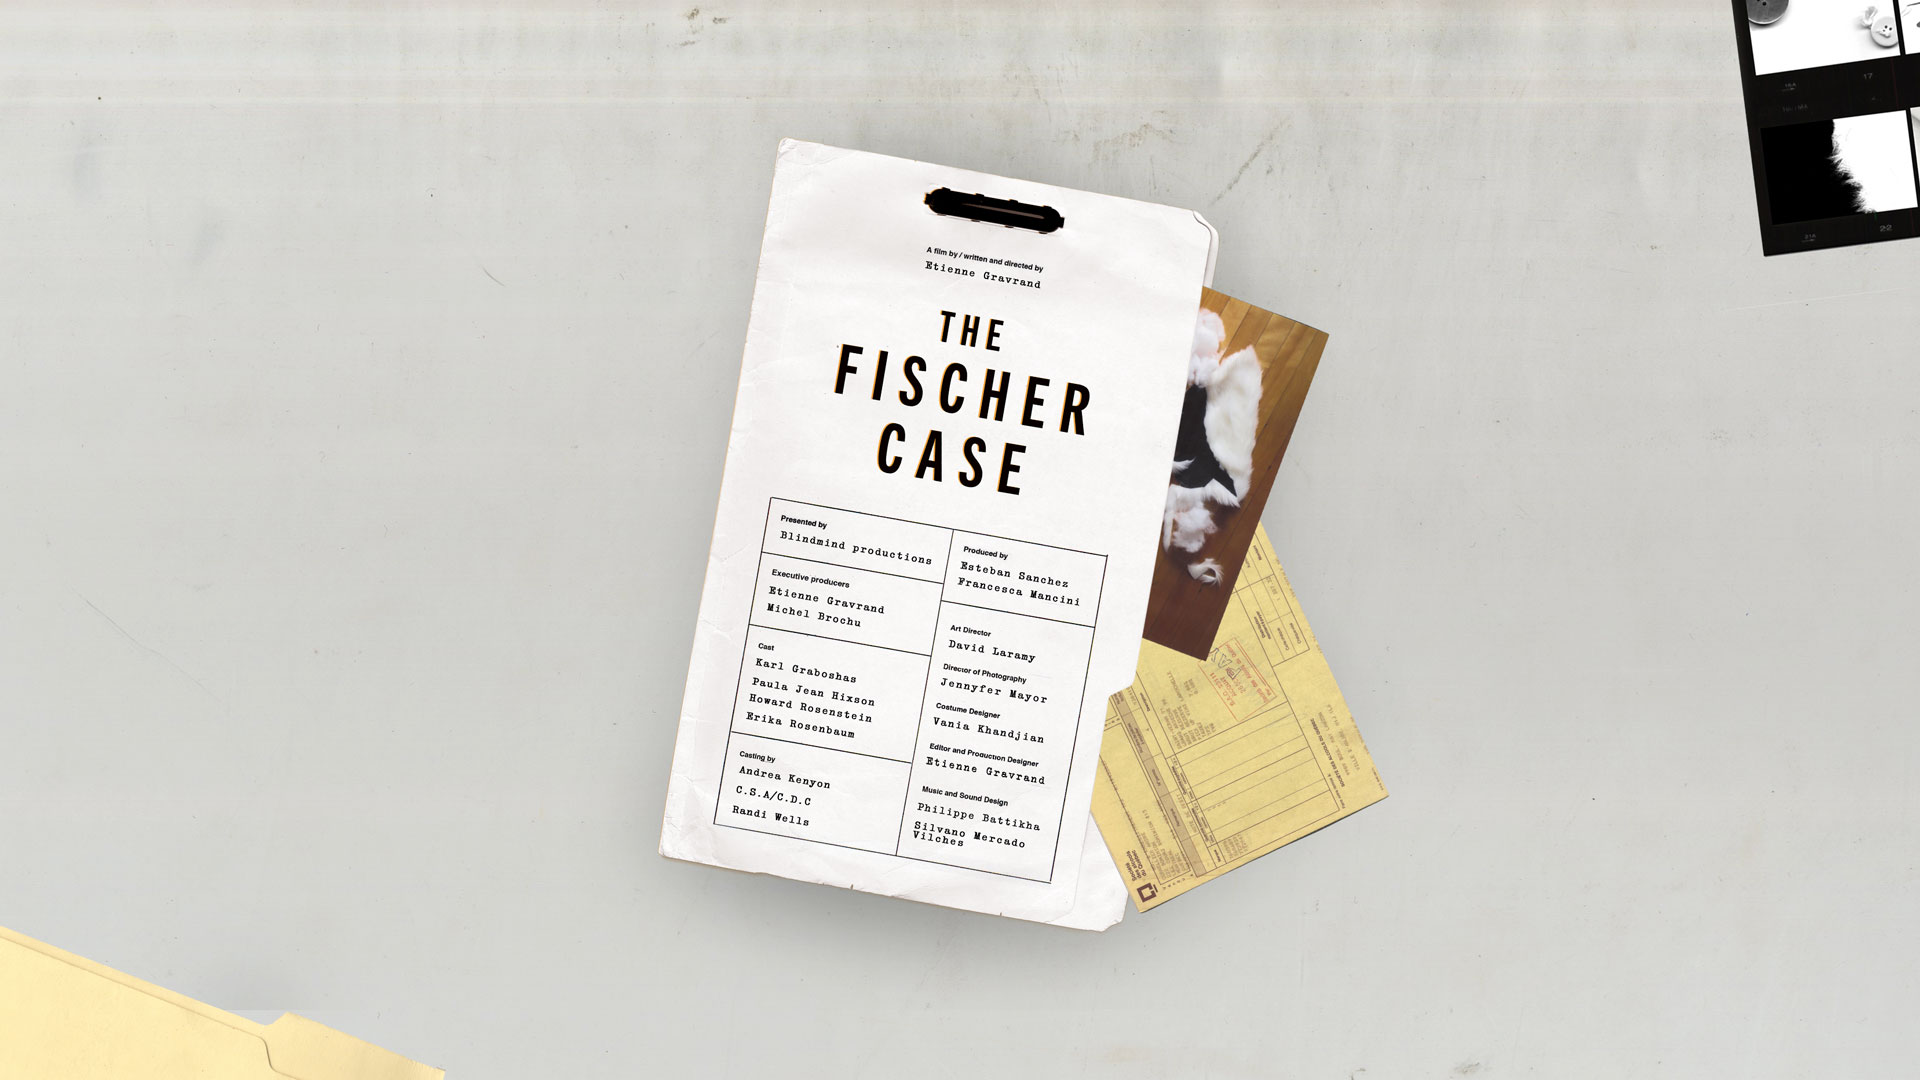 The Fischer Case